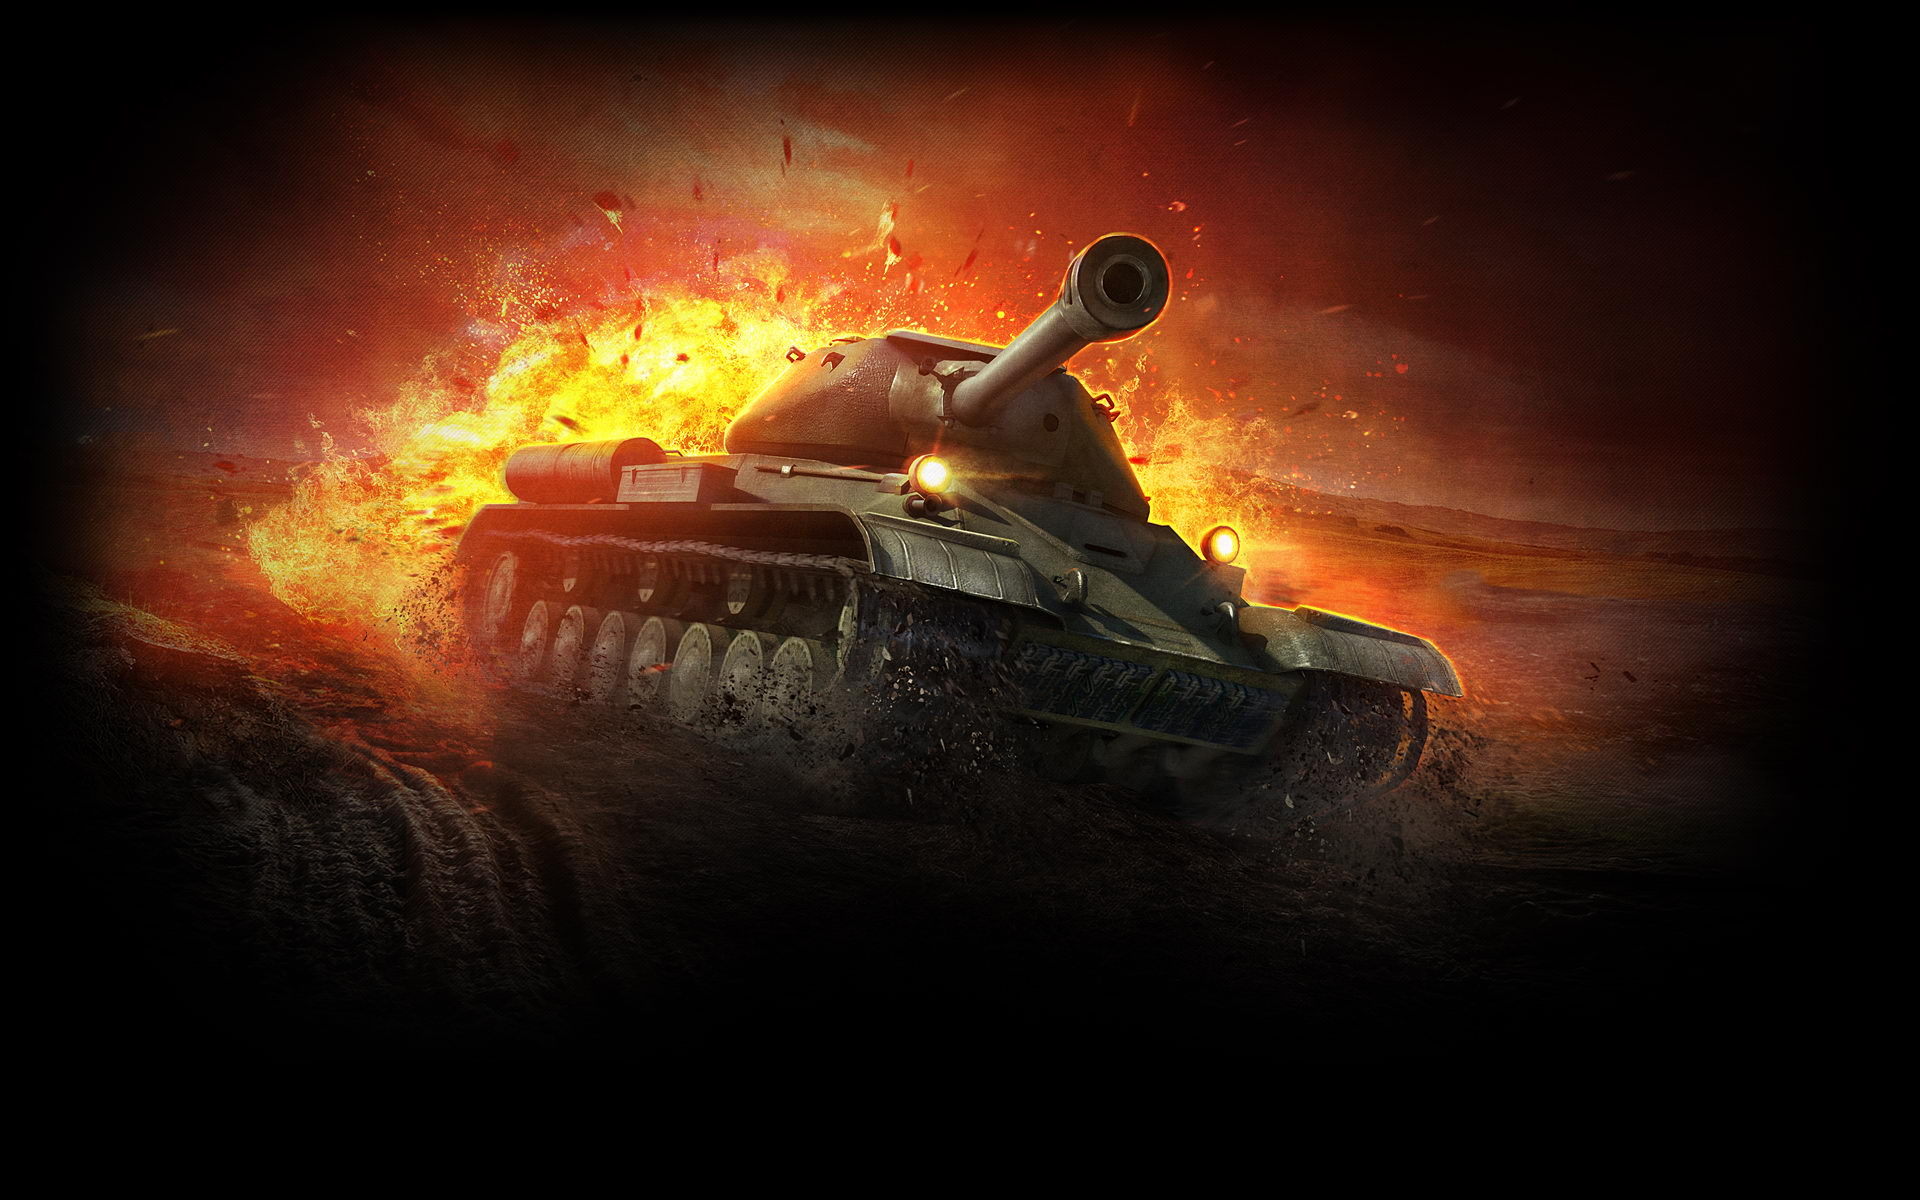 Heavy Tank IS 4 World of Tanks 873.2 Kb